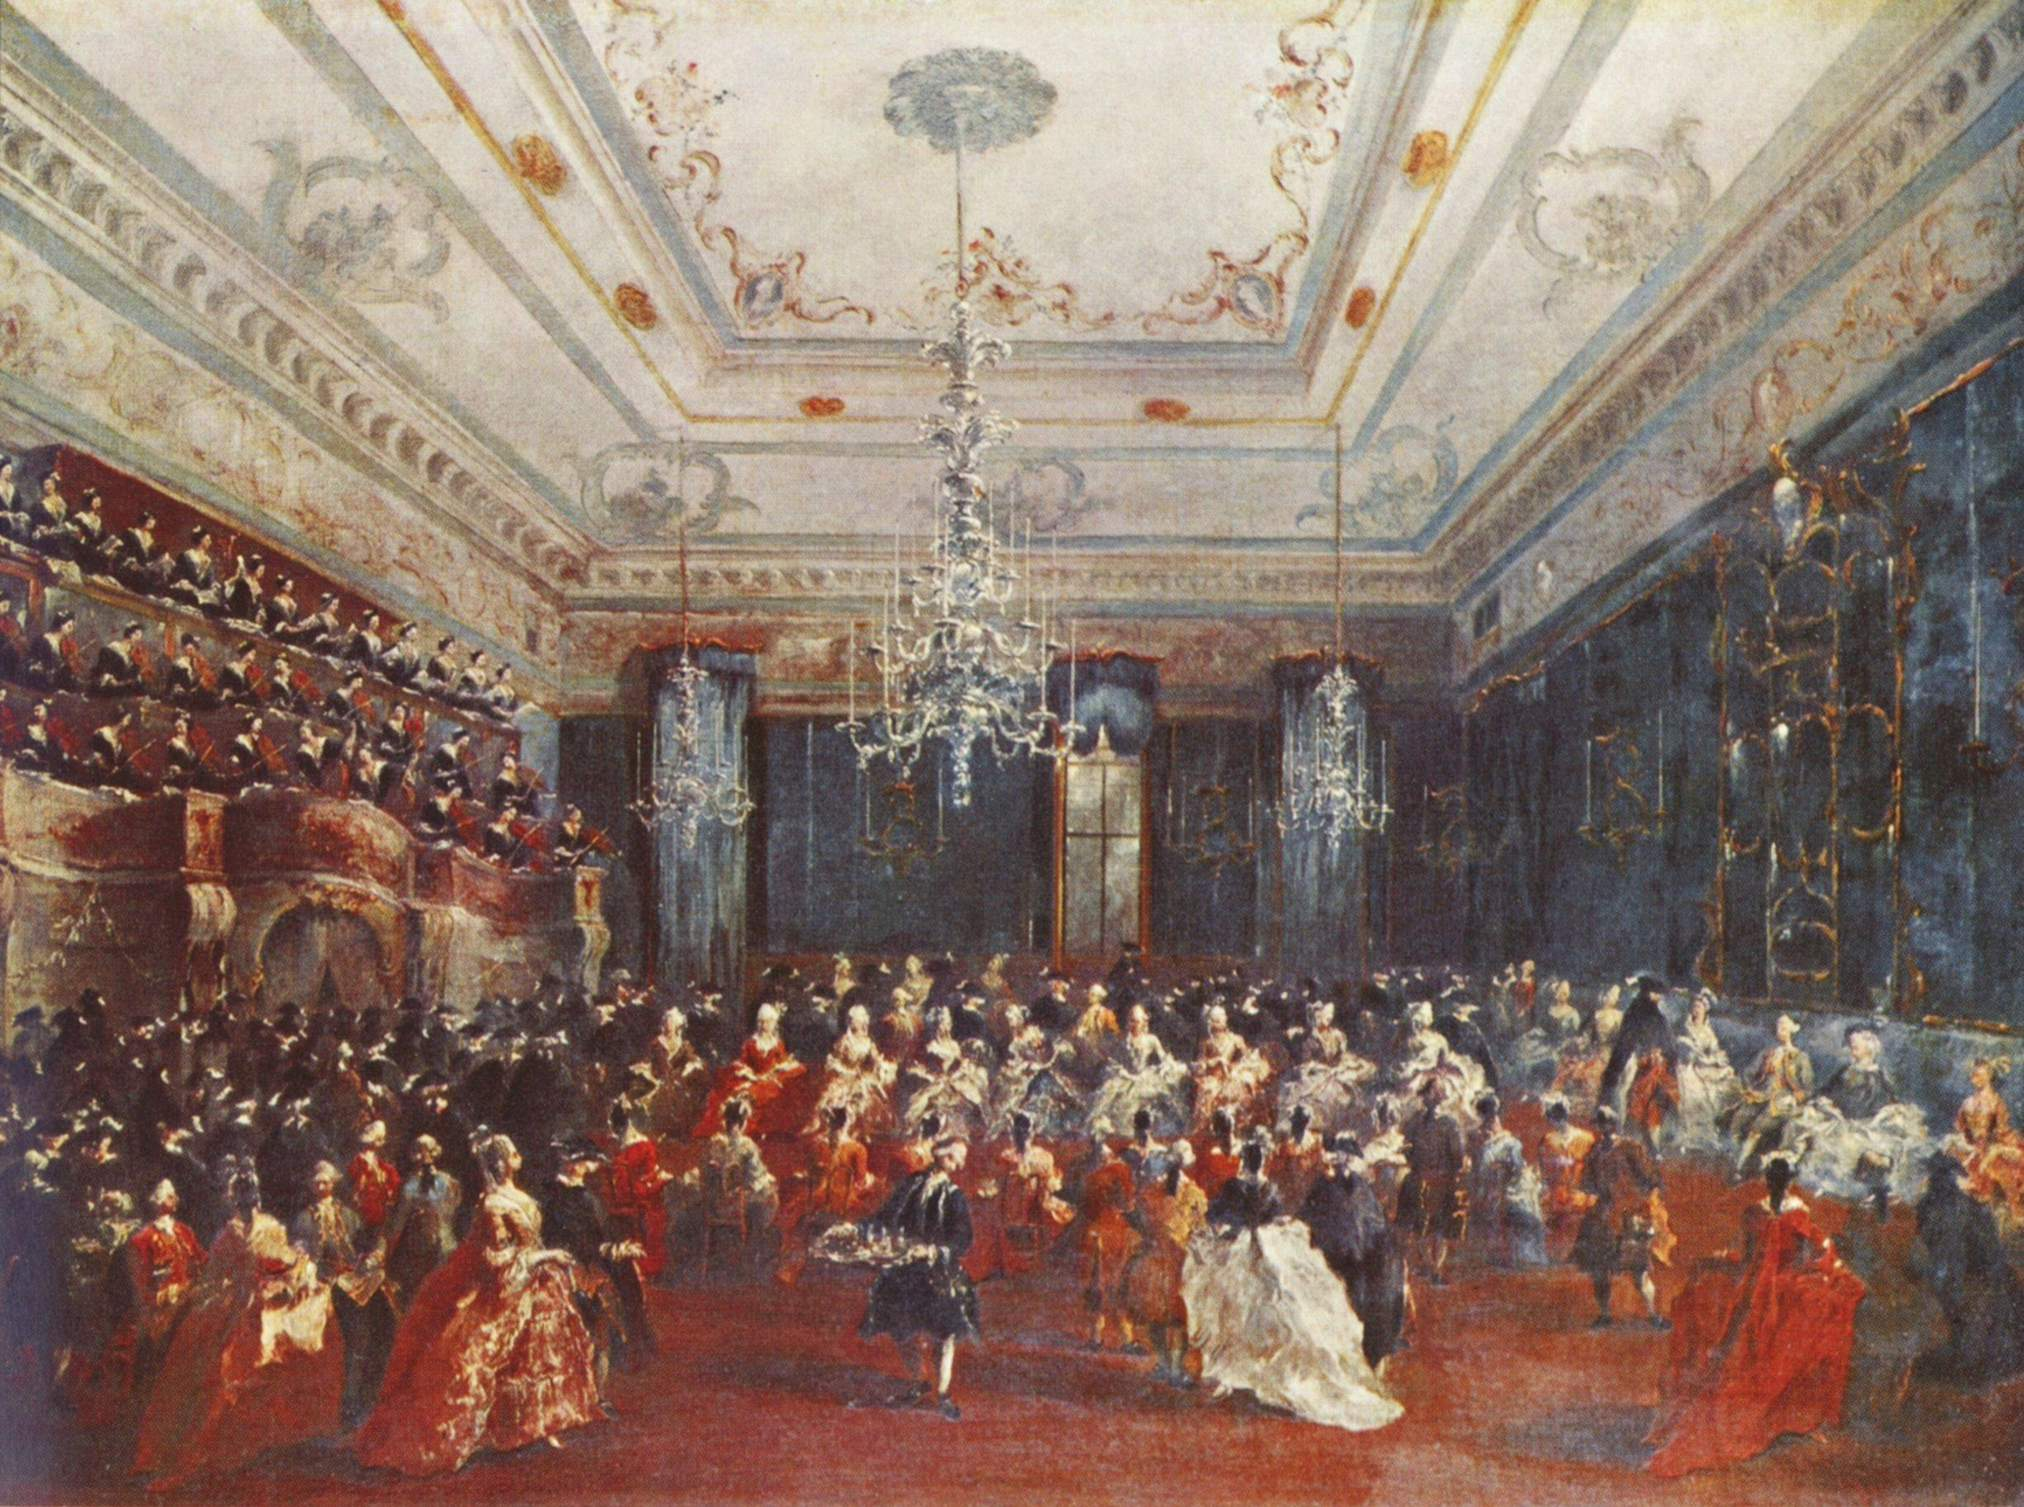 Concerts would have been given in a hall such as the one depicted in Francesco Guardi's (1712-1793) Venezianisches Galakonzert (1782)